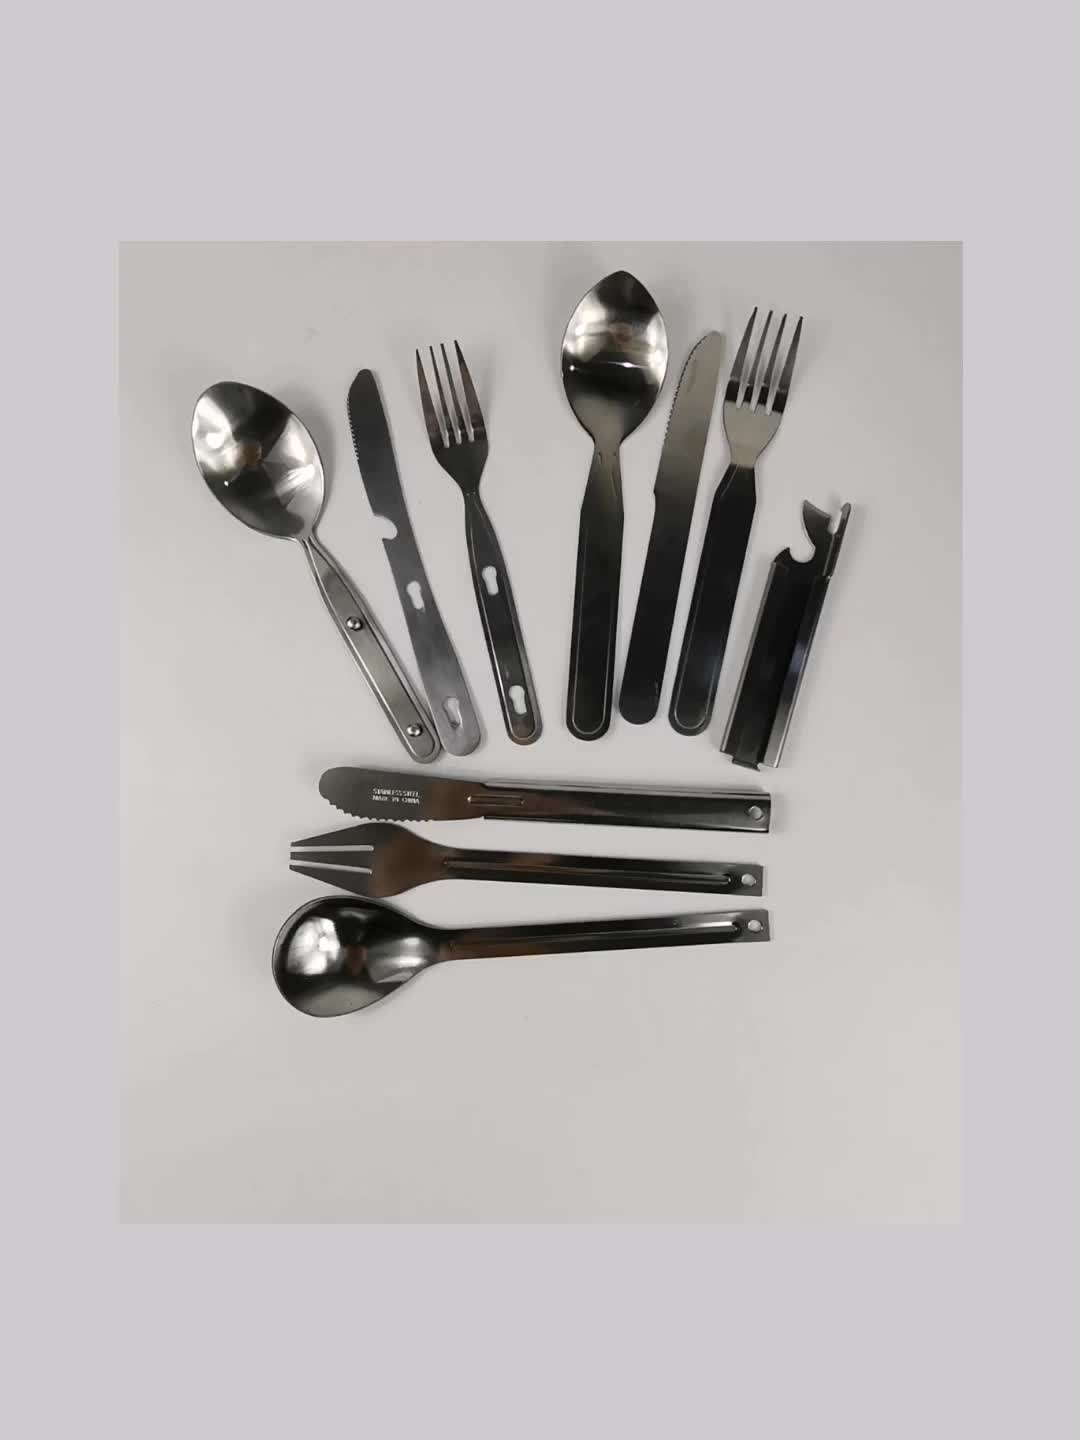 Portable Stainless Steel Flatware Set Military Army Knife Spoon And Fork